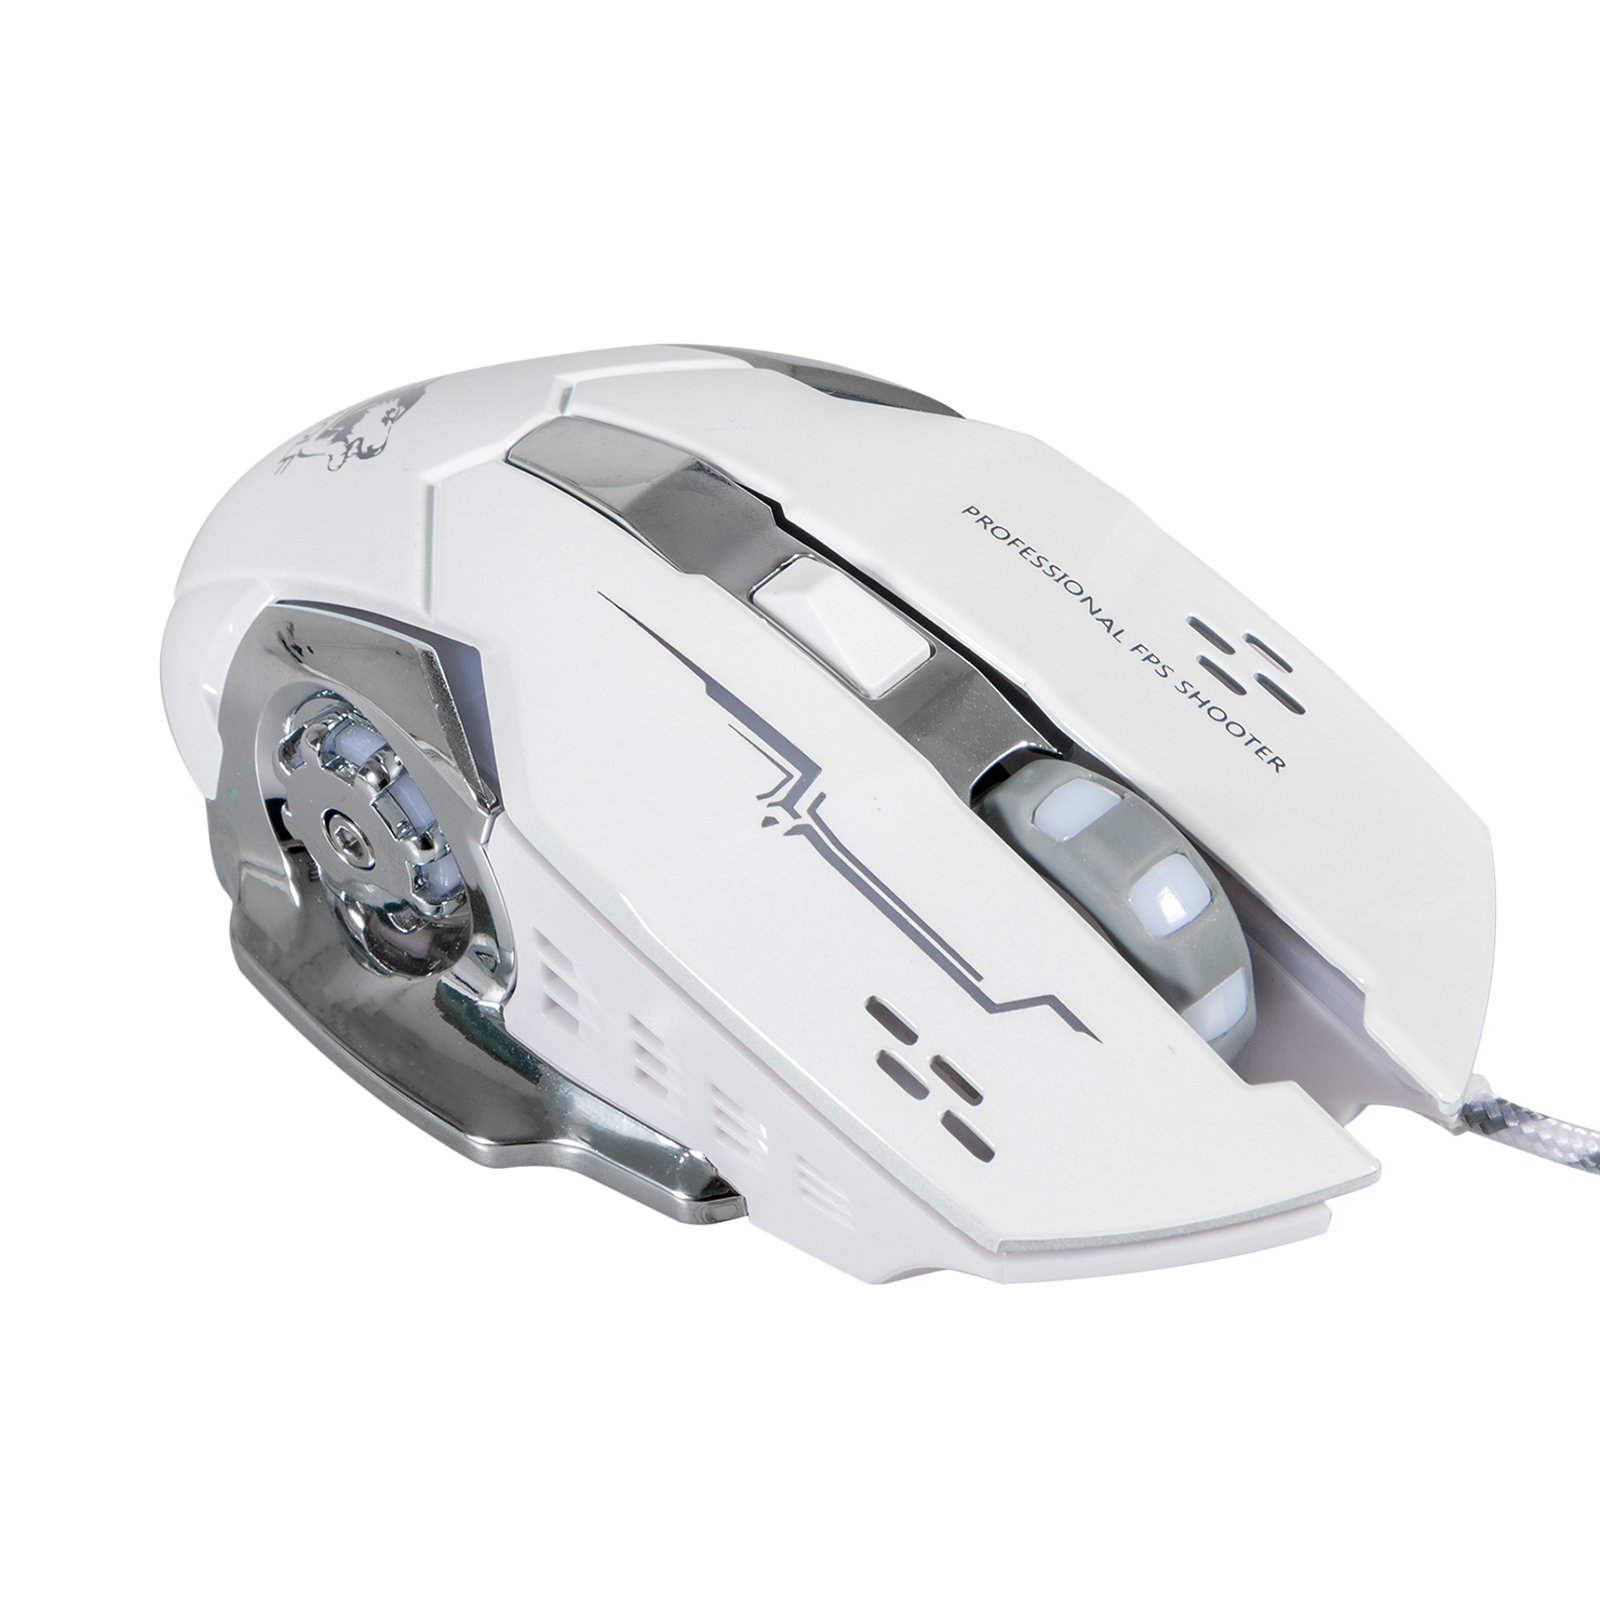 Adjustable 2400DPI Wired Optical USB Game Gaming Mouse, LED Ergonomic Mice, for PC Laptop Computer